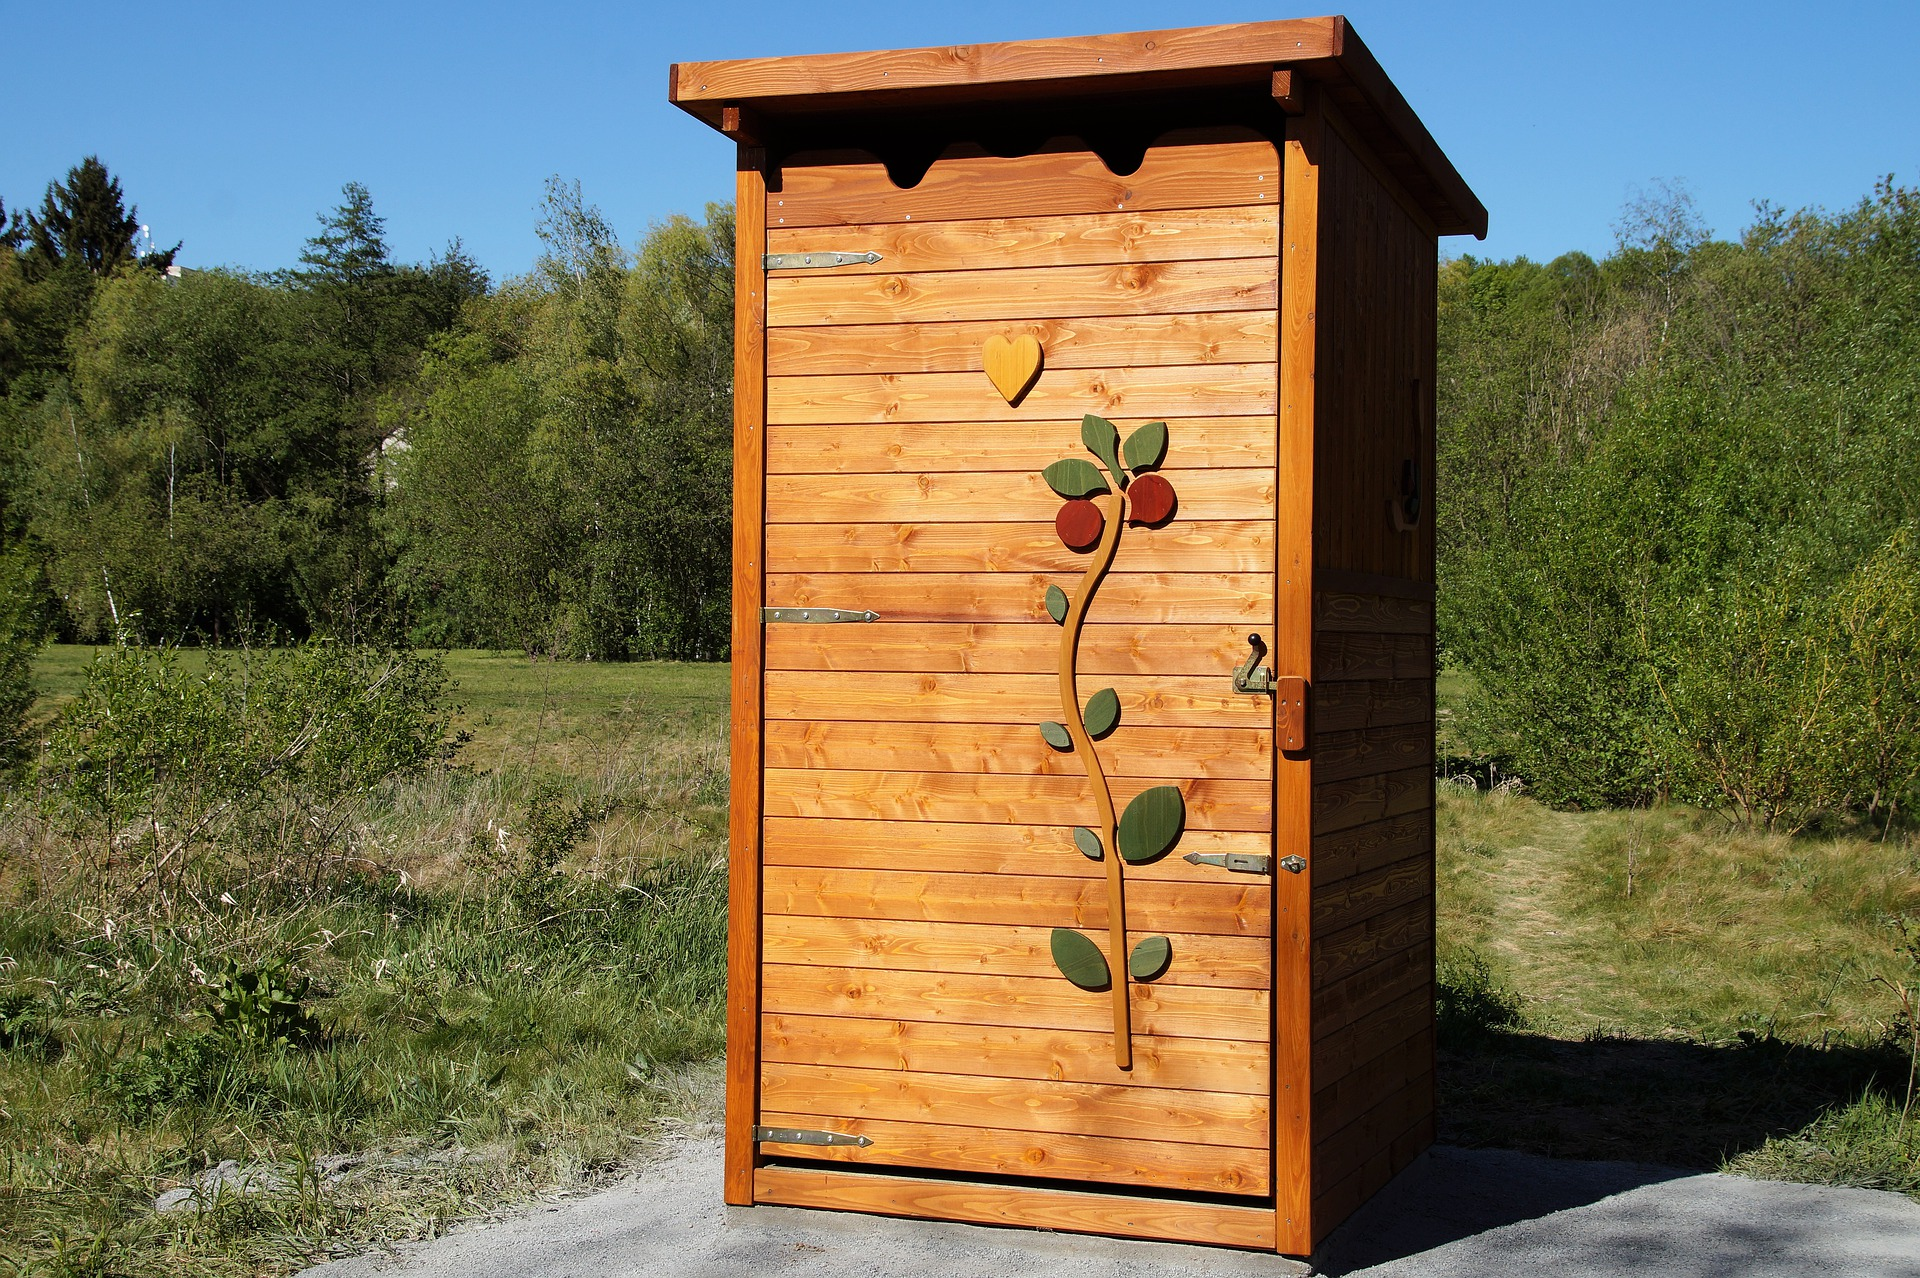 5 the-outhouse-5142976_1920